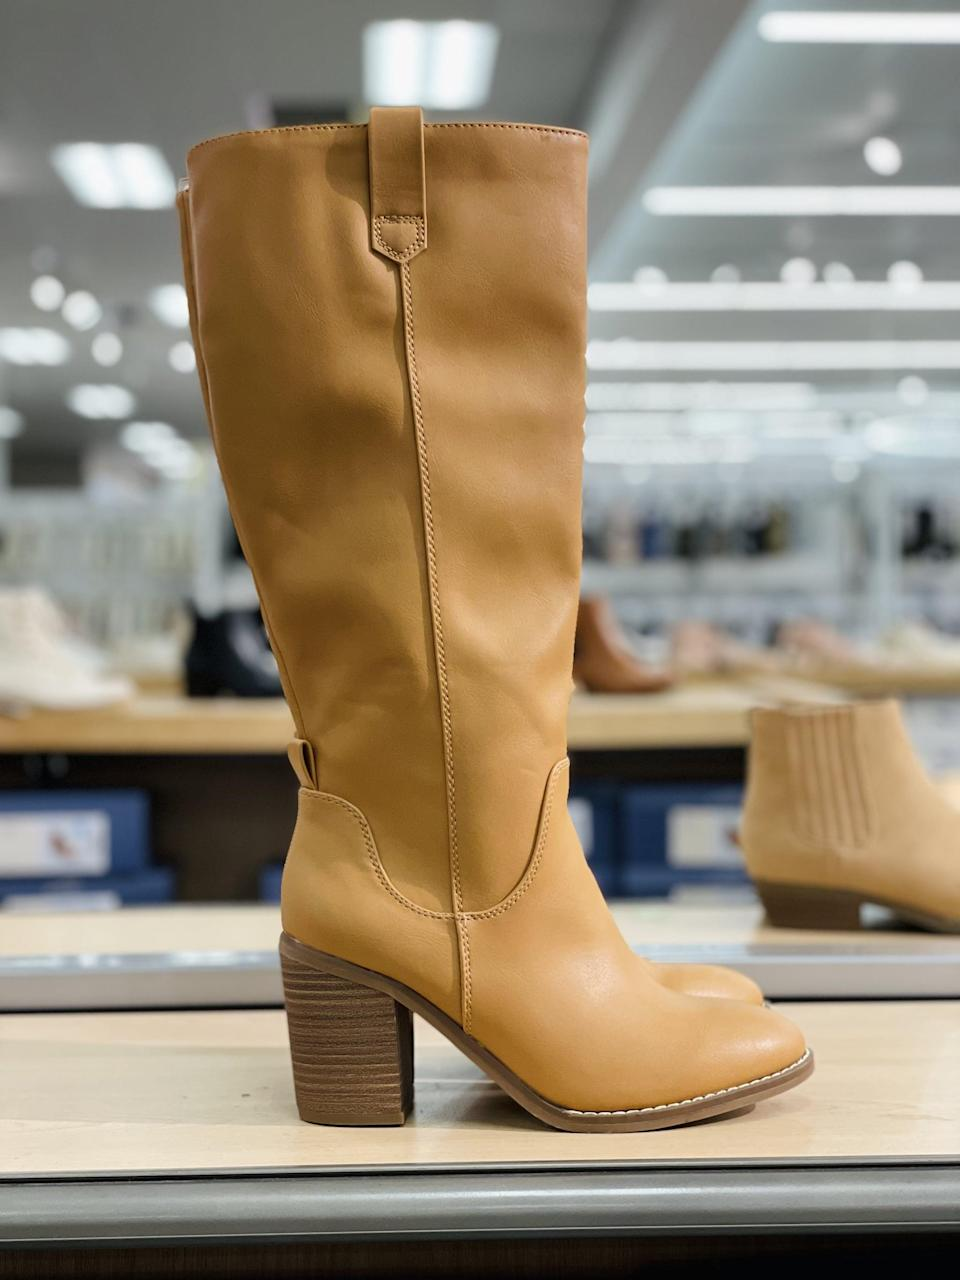 <p>I've been looking for a style like these <span>Universal Thread Davinia Heeled Riding Boots</span> ($45) for over a month now, and I'm so thrilled to find an affordable option. These will look amazing with fall dresses. They also come in black.</p>